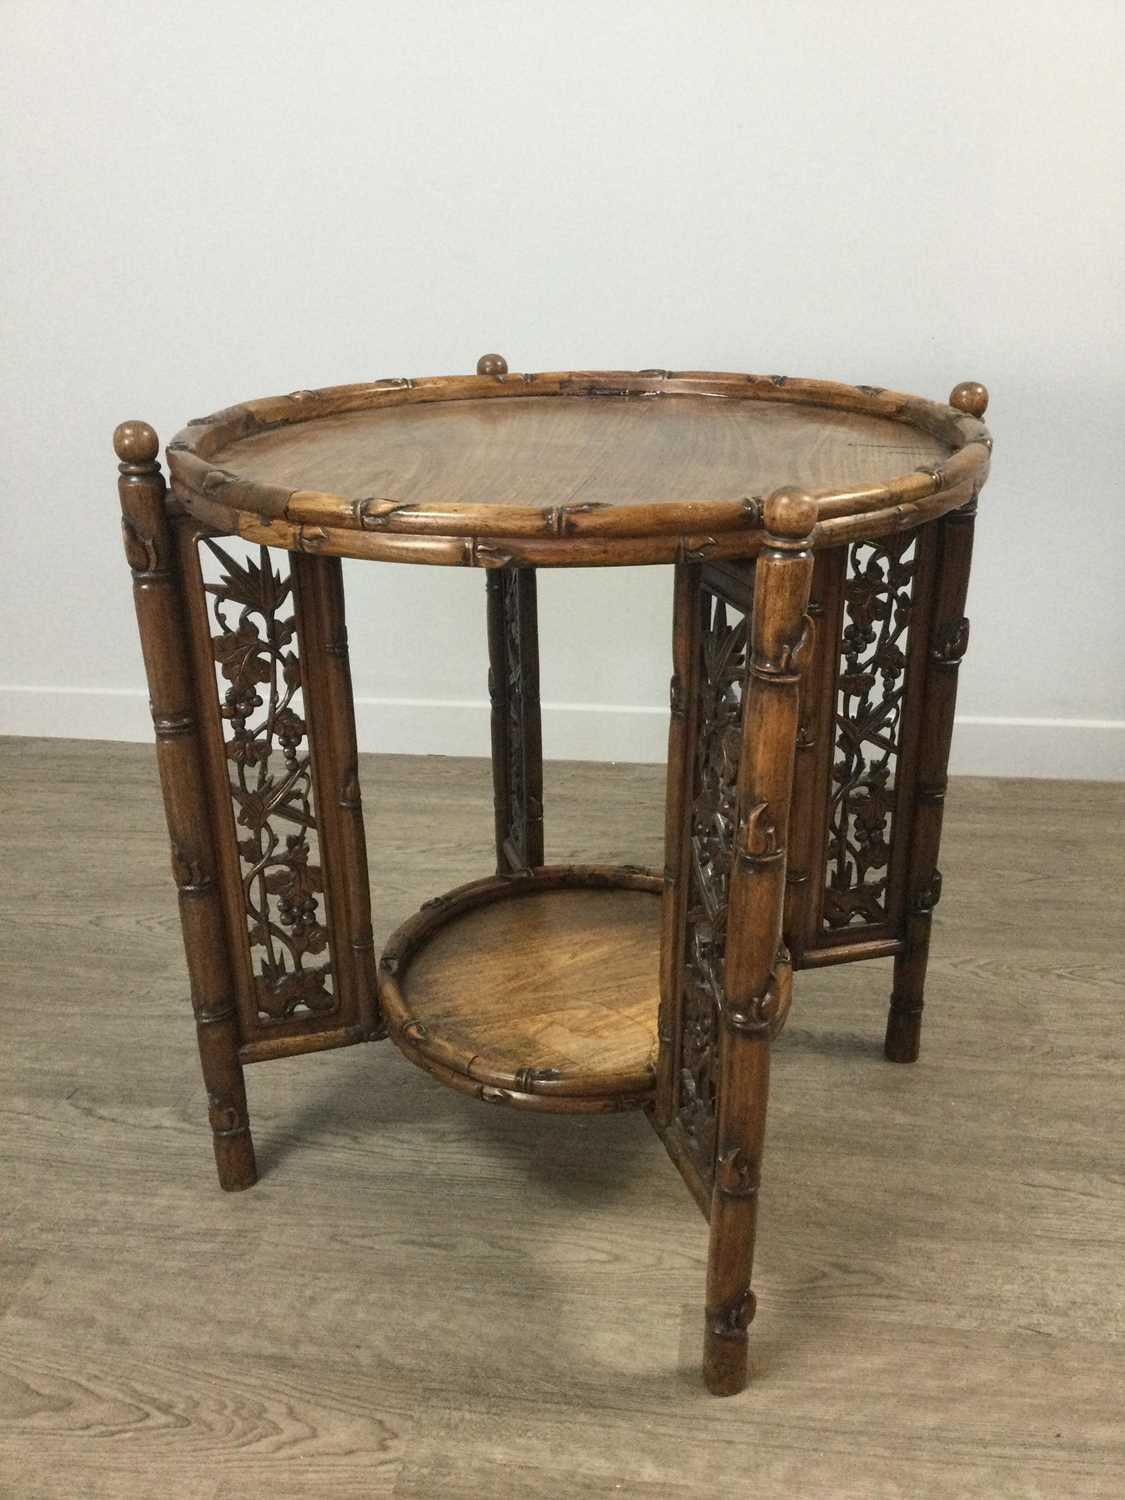 Lot 787 - A 20TH CENTURY CHINESE TABLE ON FOLDING STAND